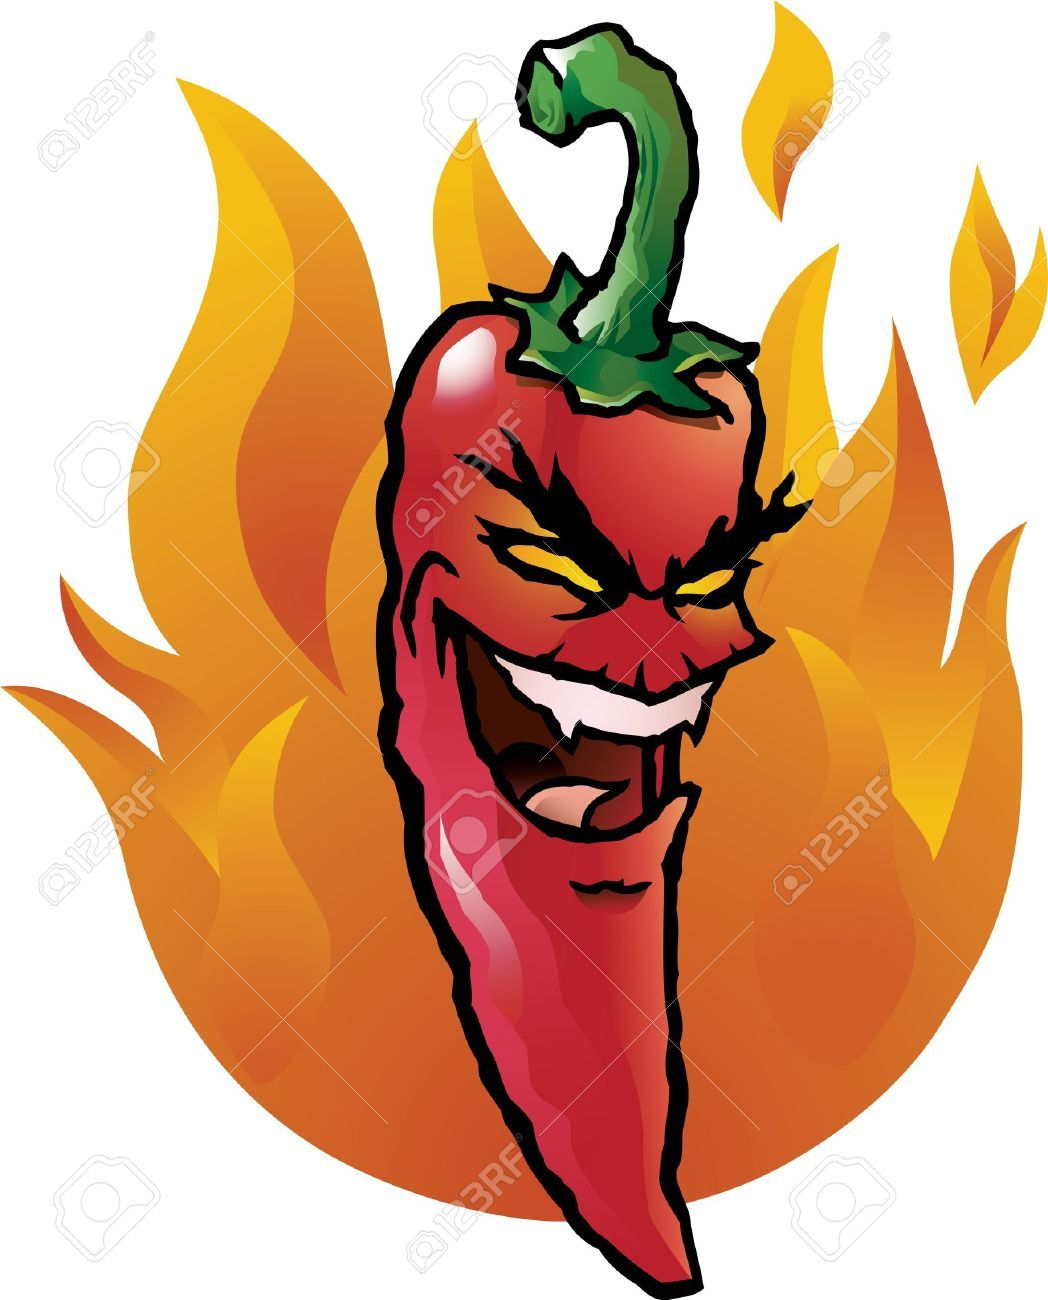 small resolution of habanero stock vector illustration and royalty free habanero clipart